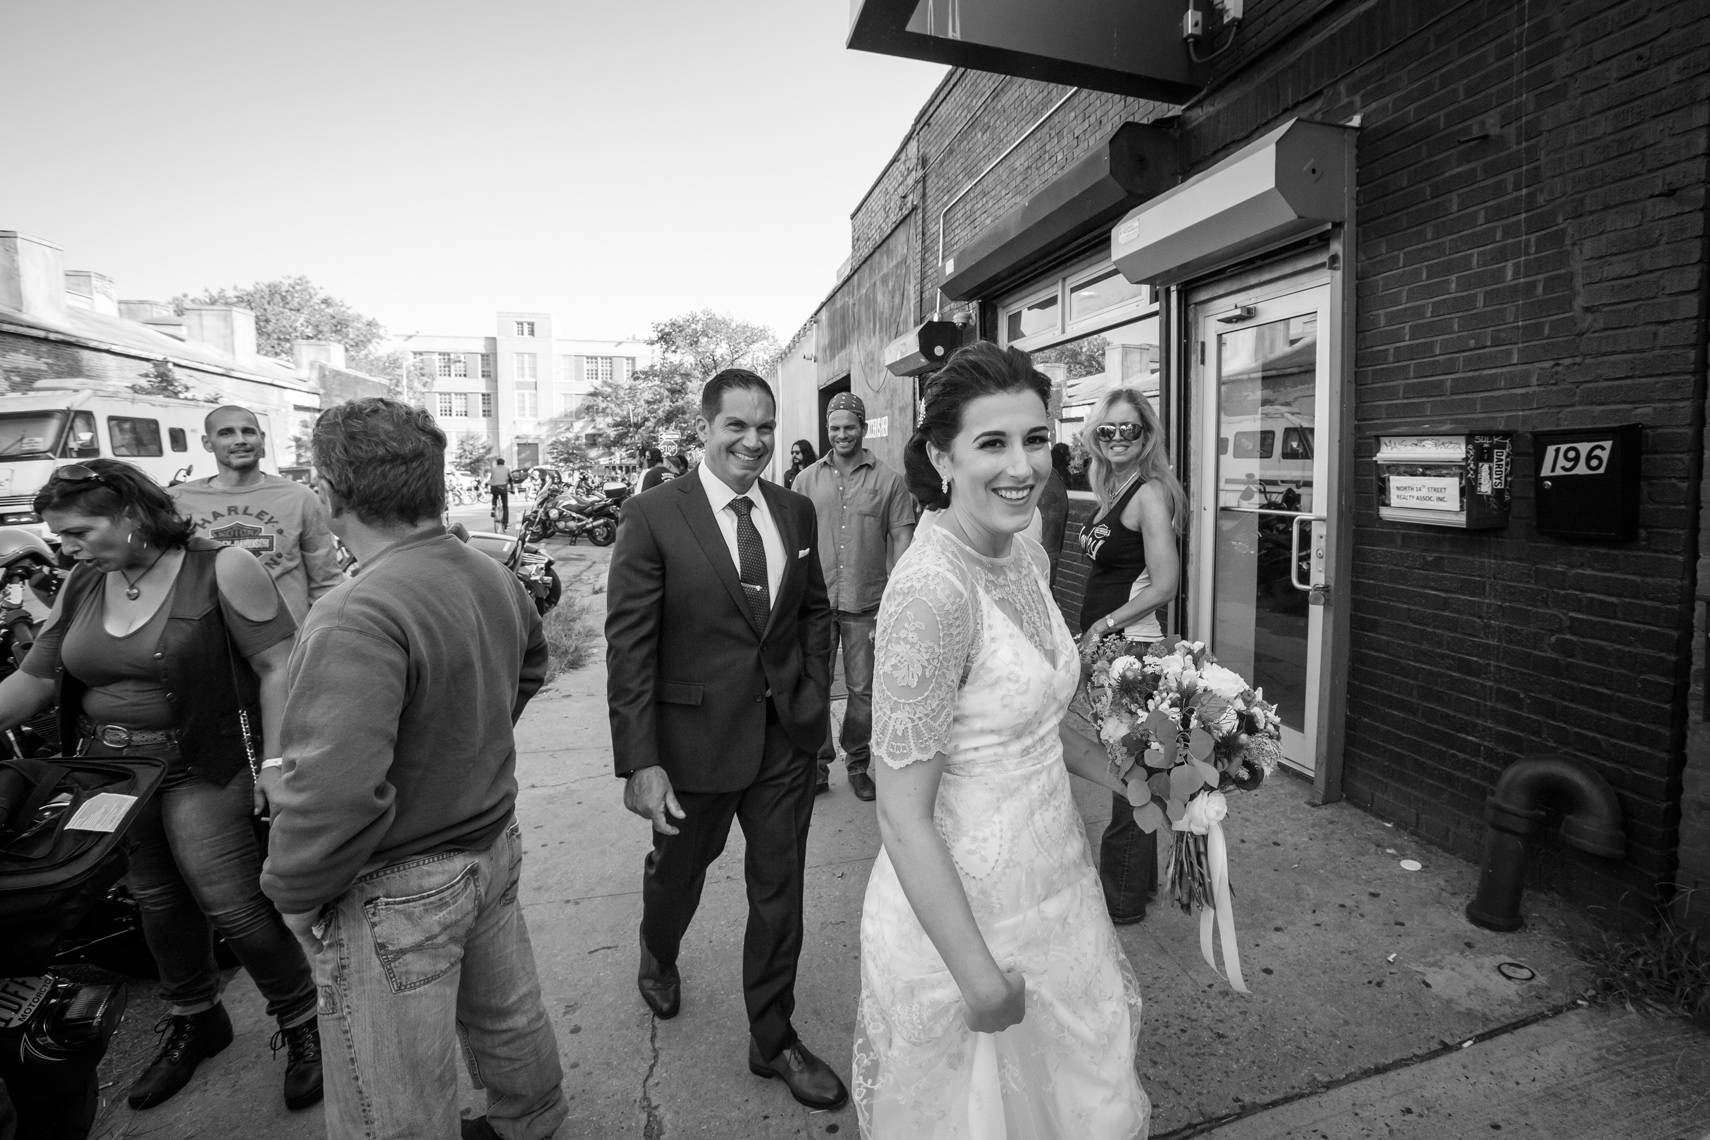 ny-wedding-photographers-sarma-and-co-165_1